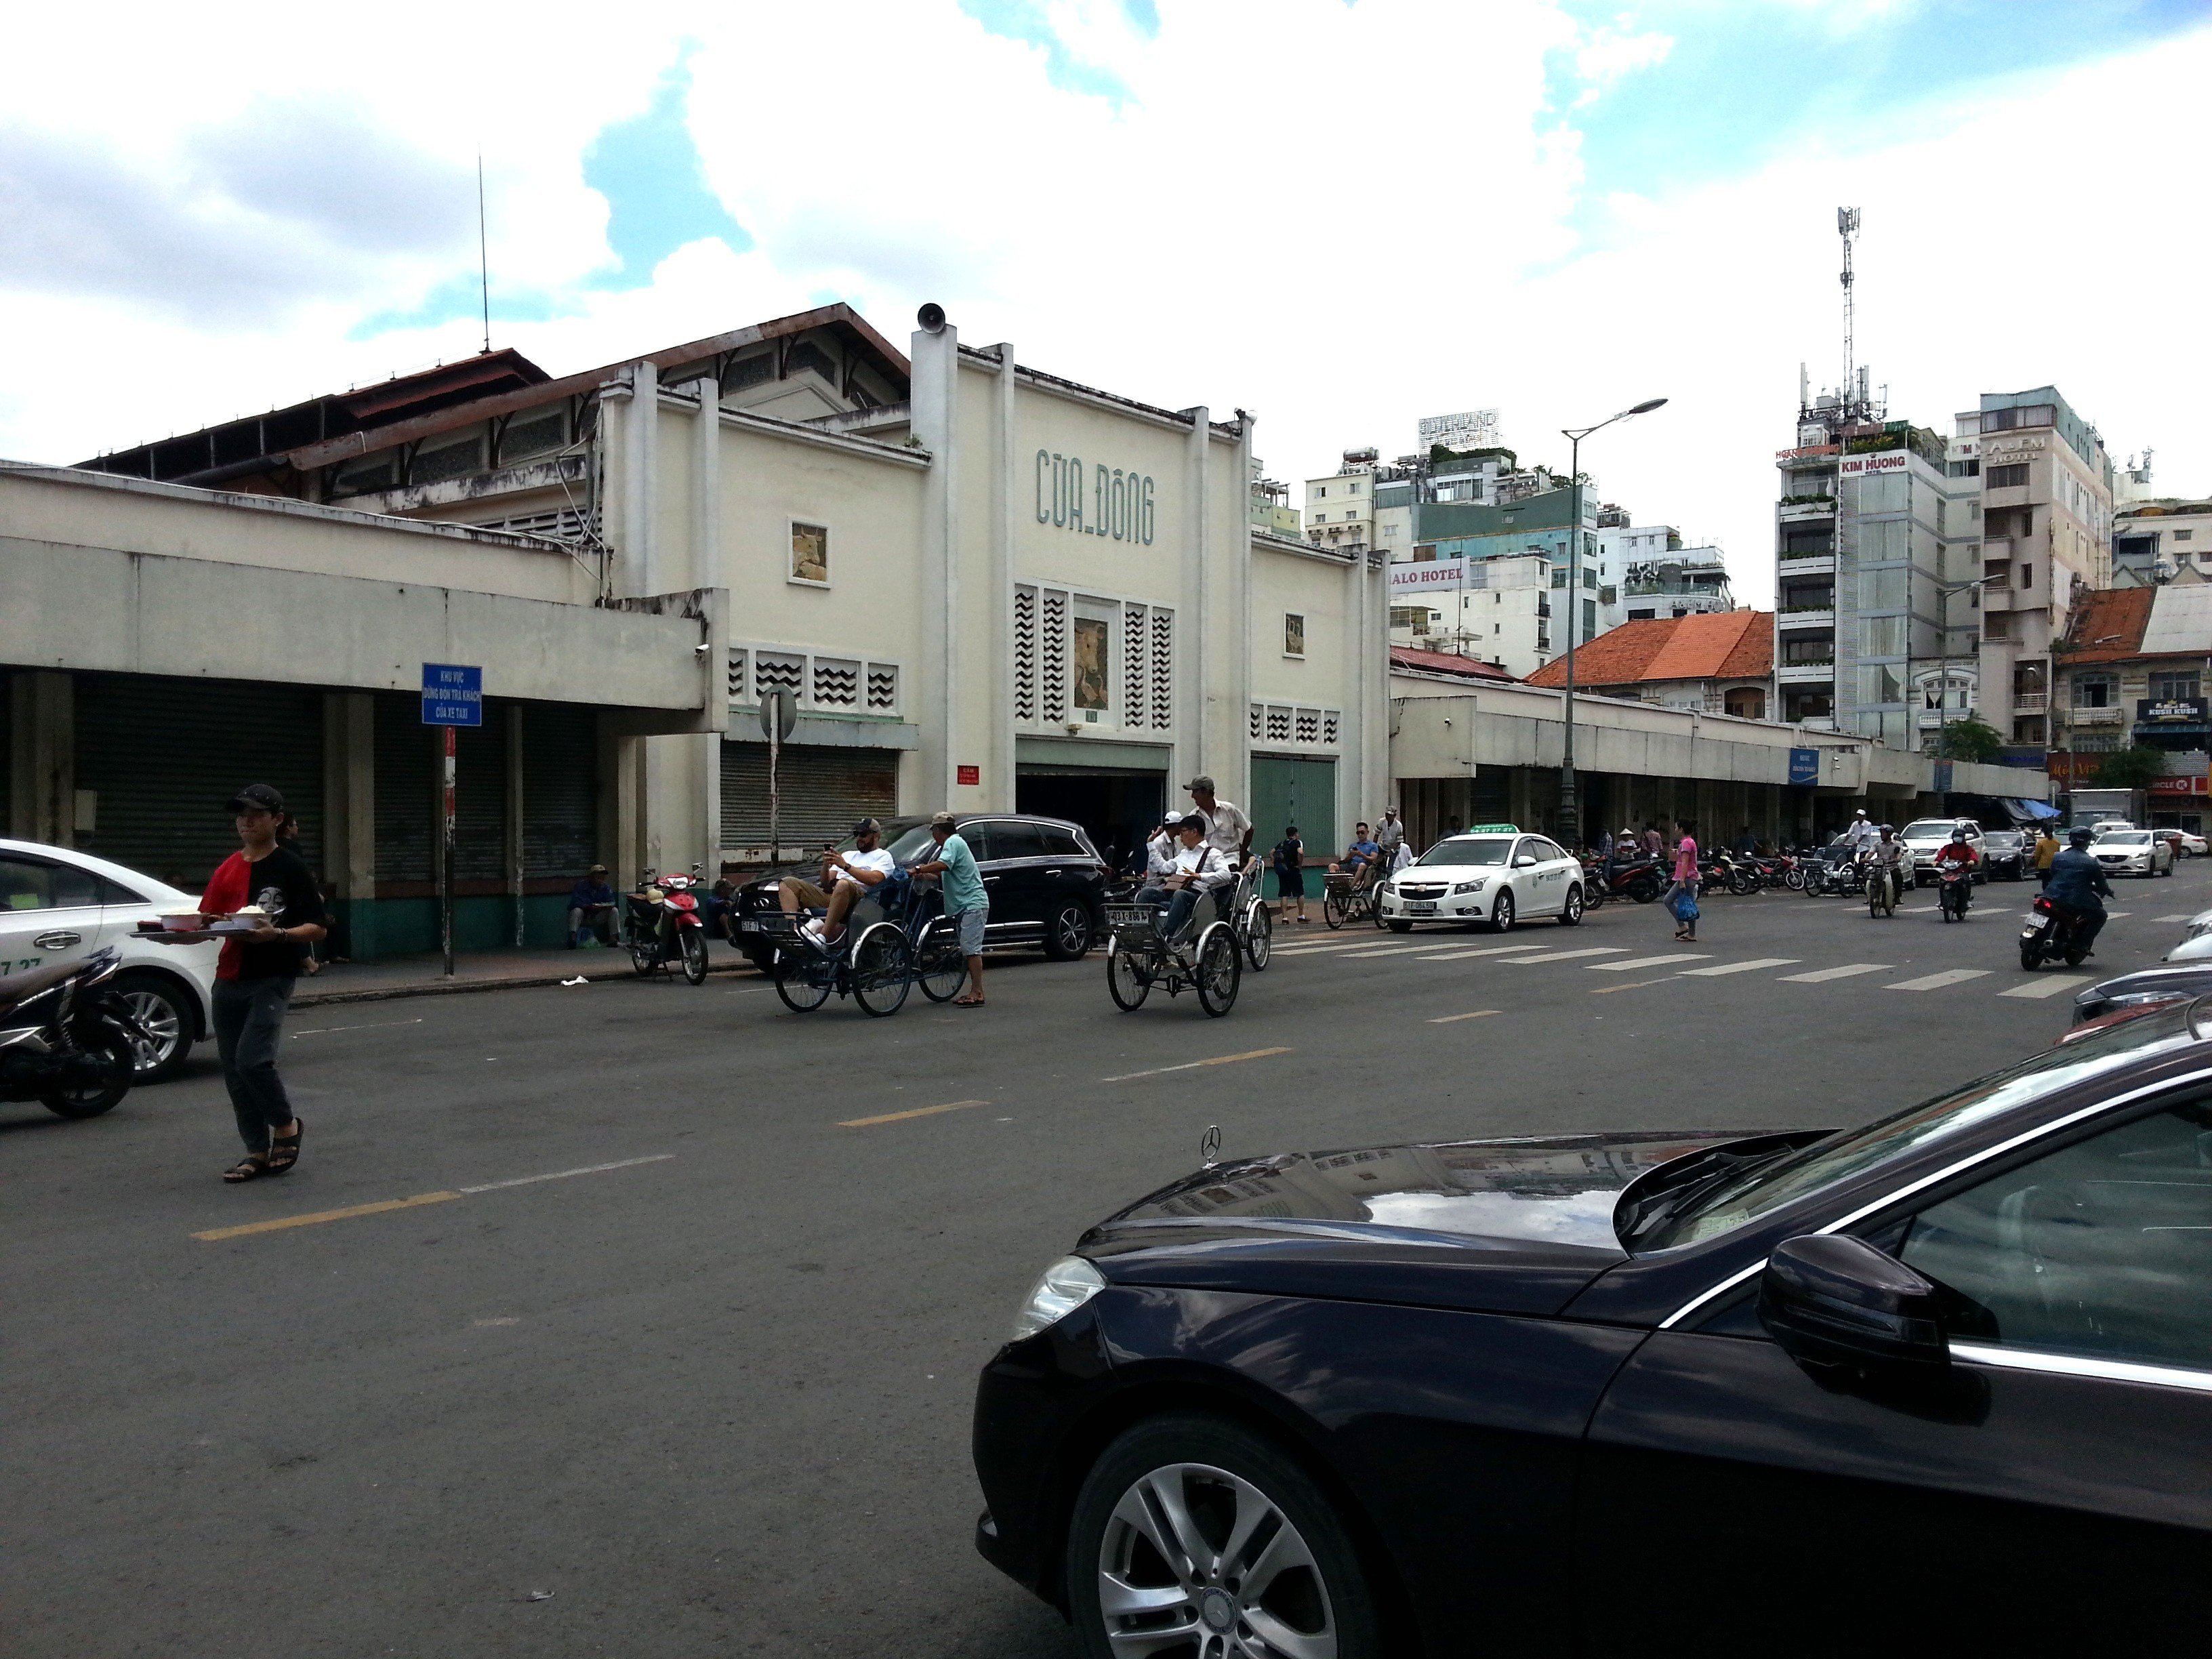 West Gate to Ben Thanh Market